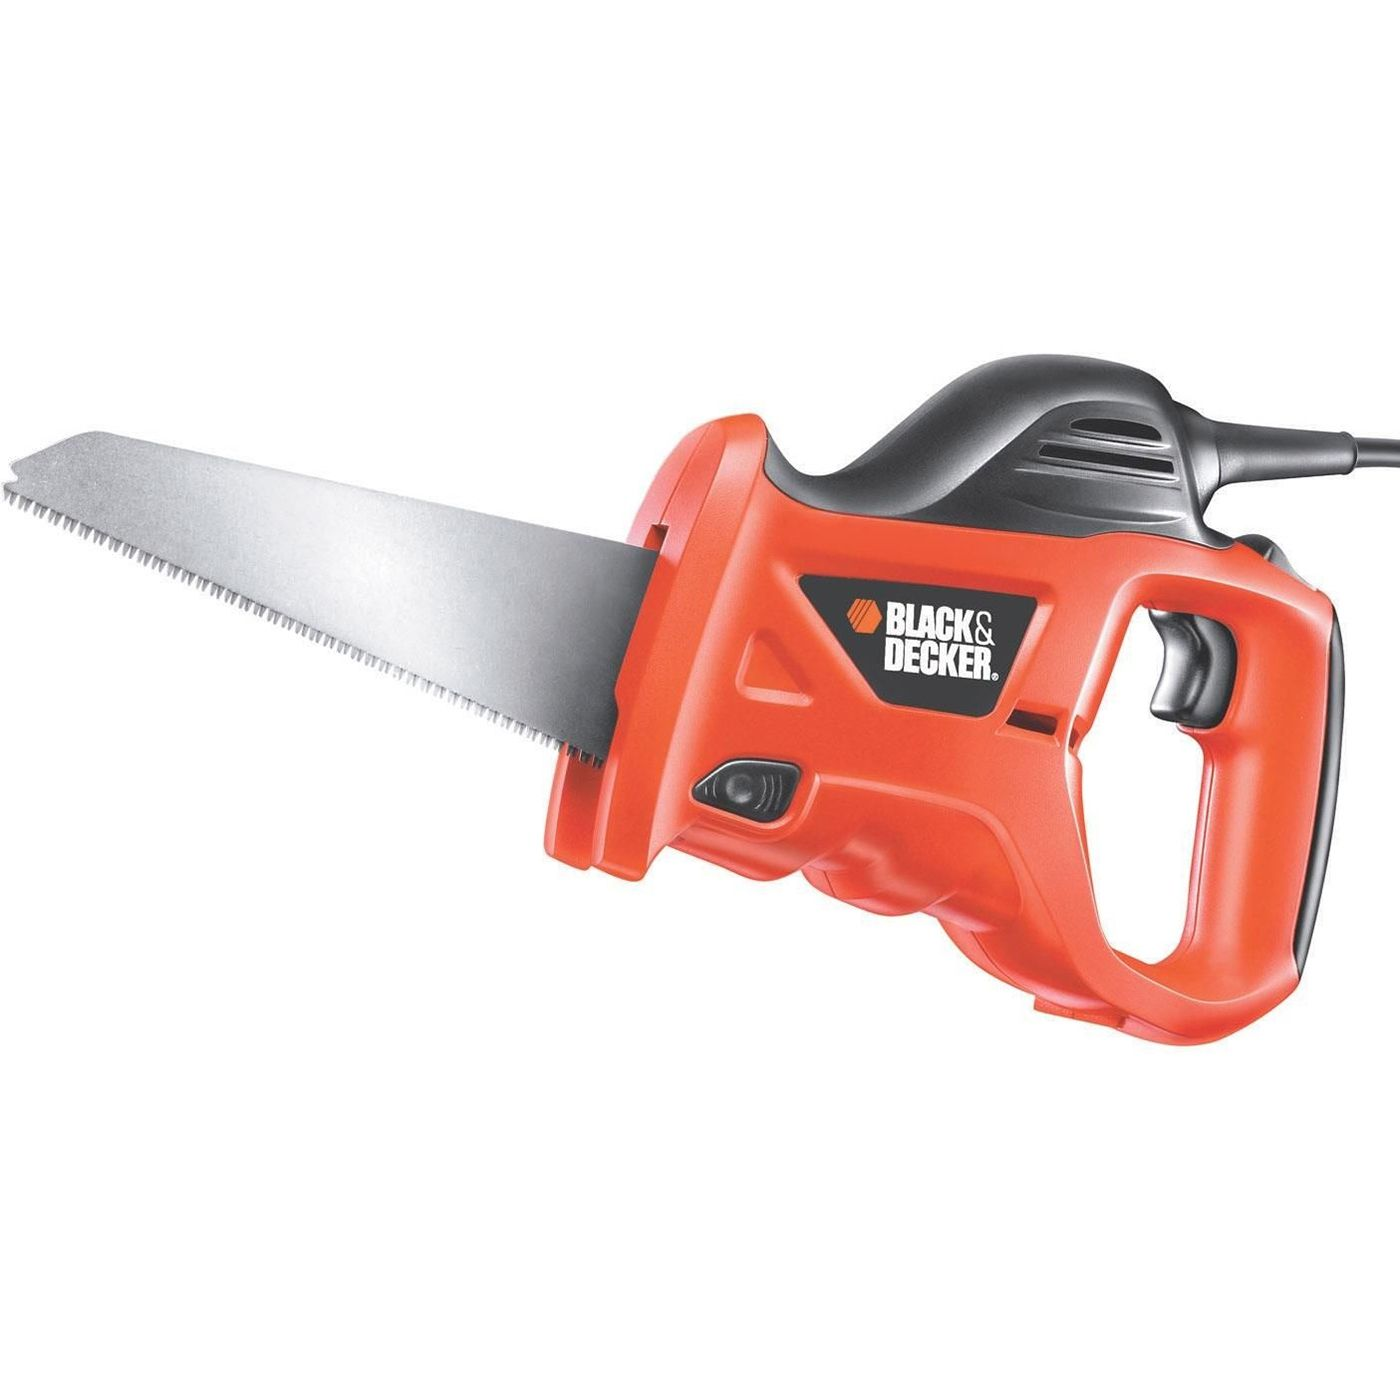 Пила сабельная Black&Decker KS880EC в Алматы